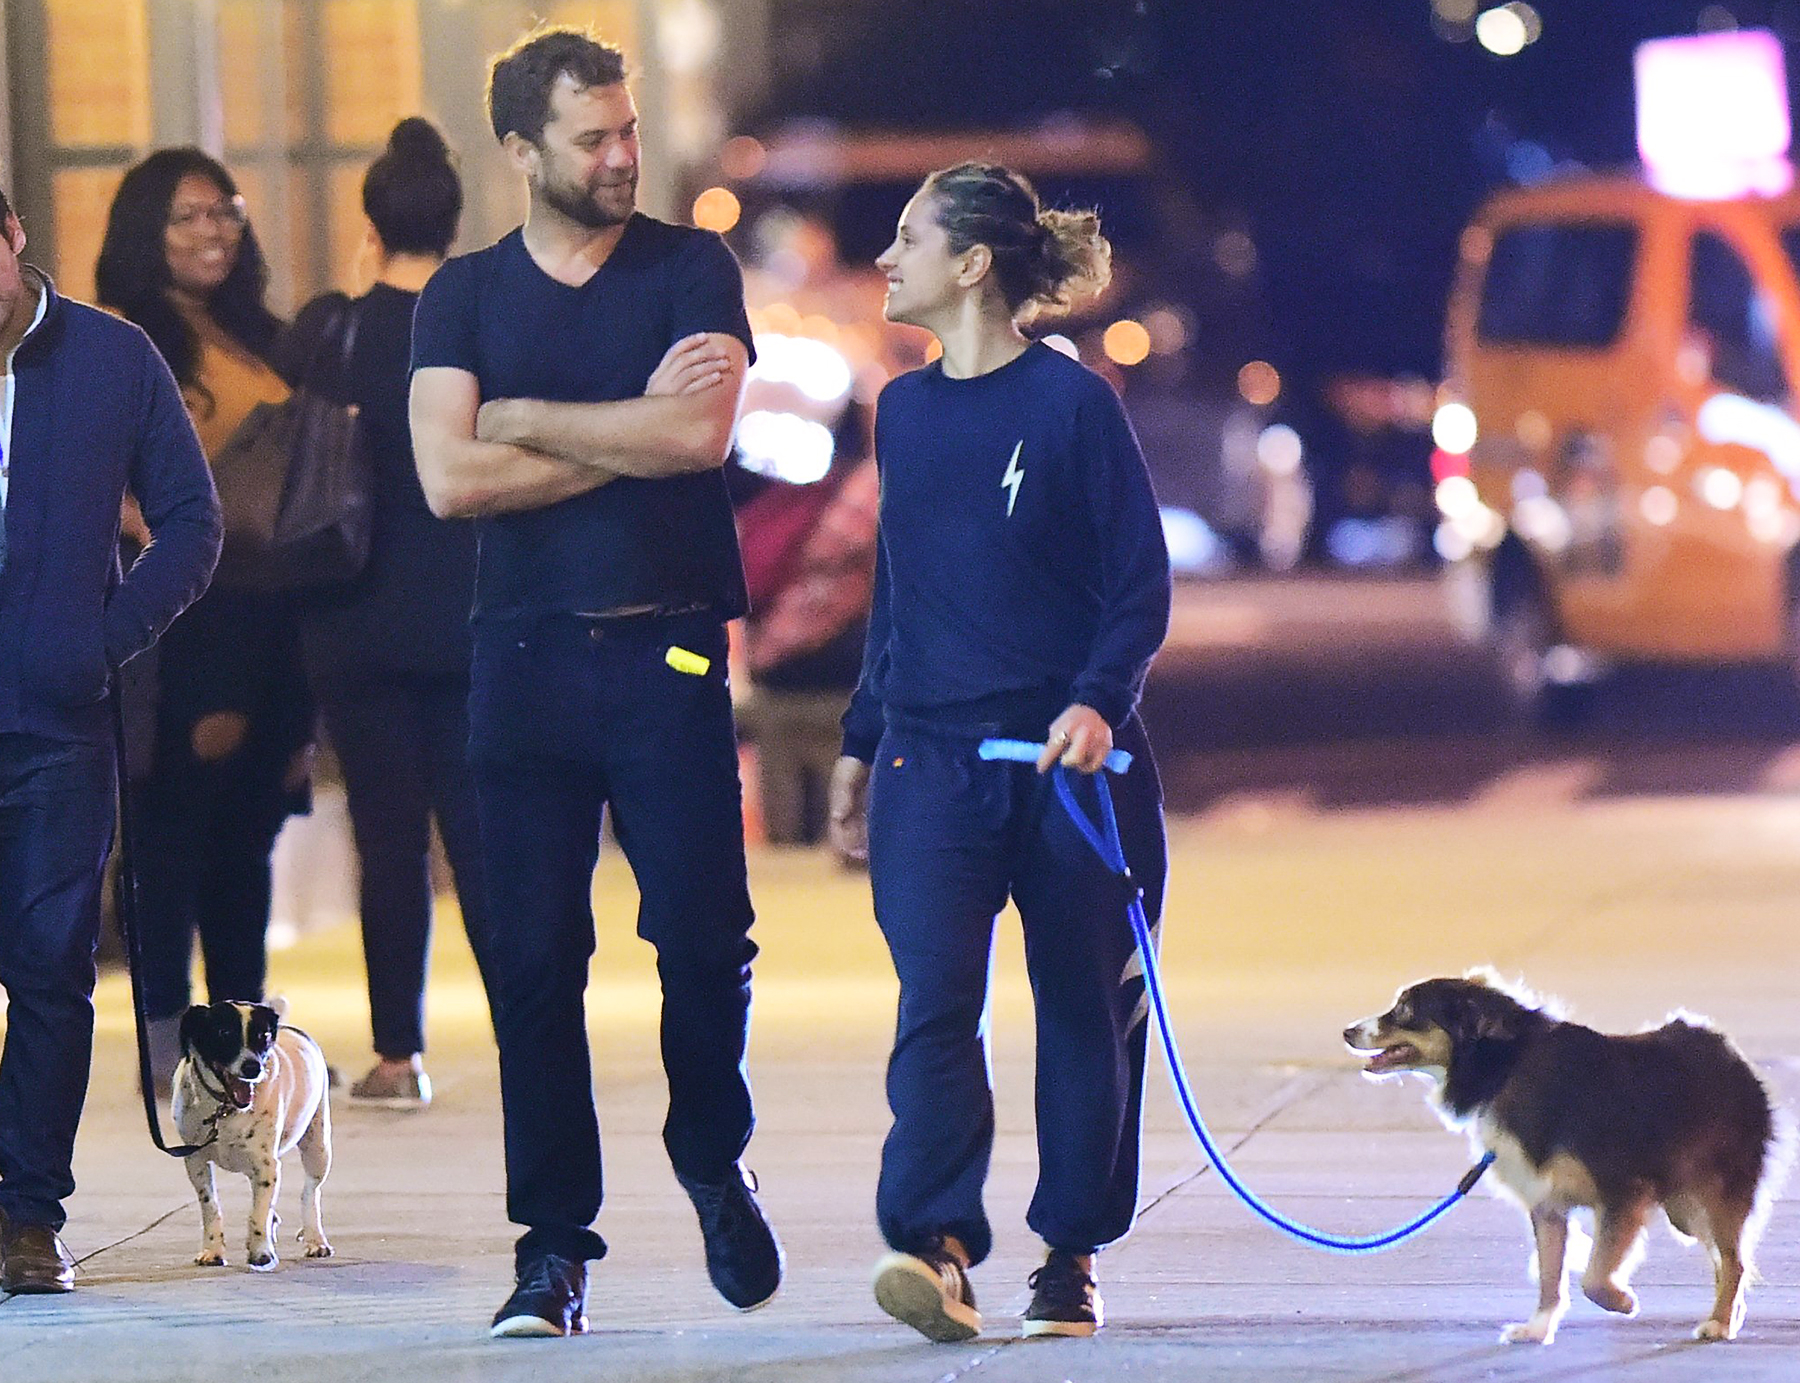 Joshua Jackson is spotted on a late night stroll with Margarita Levieva in September 2016.